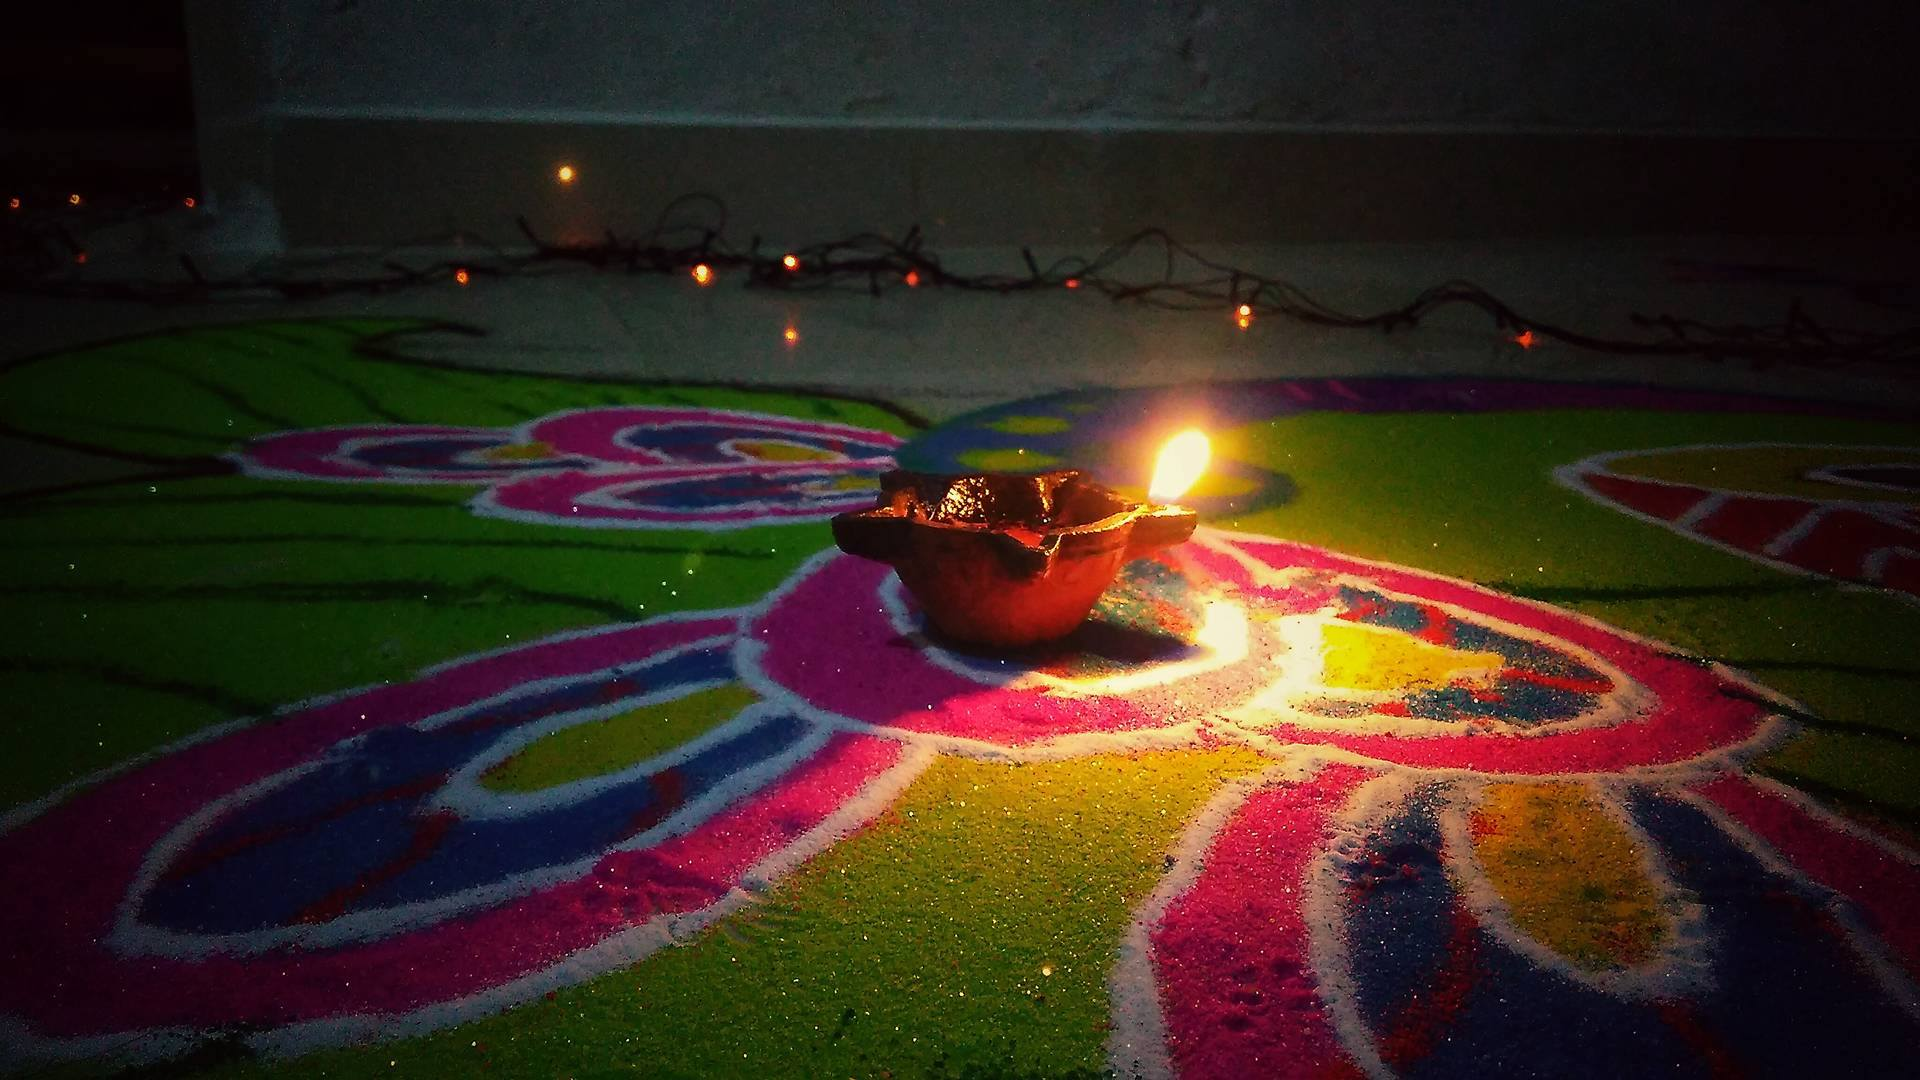 The burning candle during the Diwali. Photo: Navjyot Vyas, Gujarat, 20116.